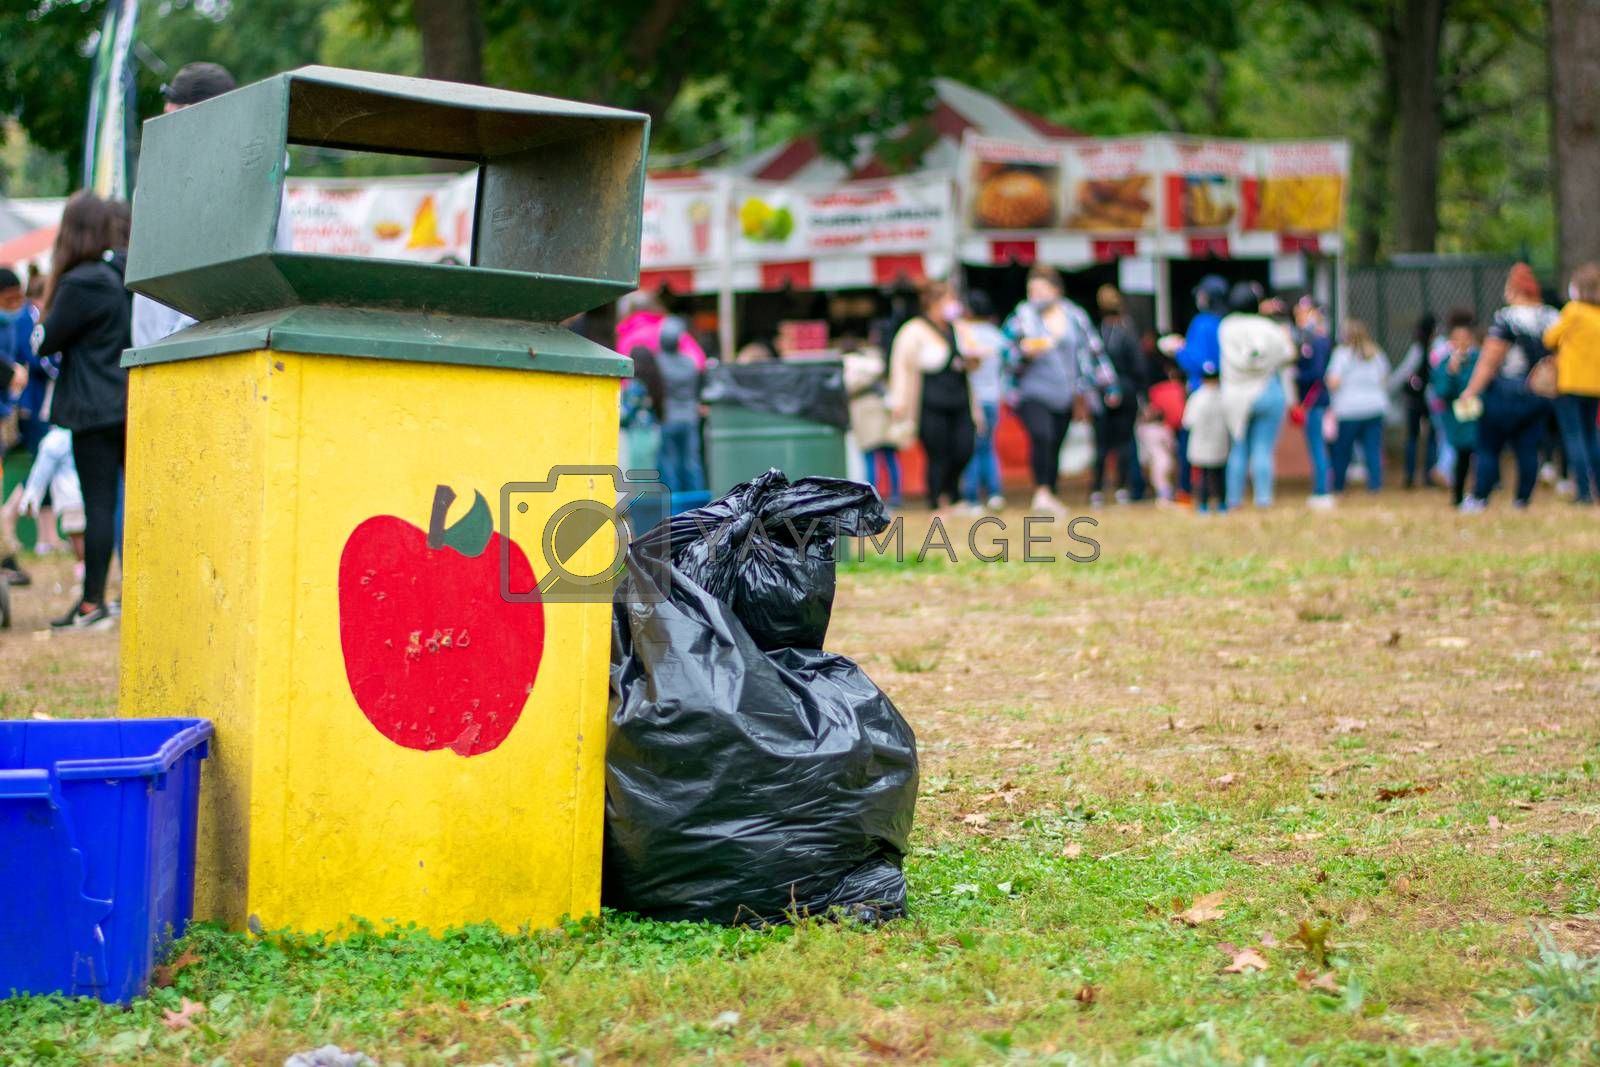 A Yellow Trash Can at a Carnival With an Apple Painted on It